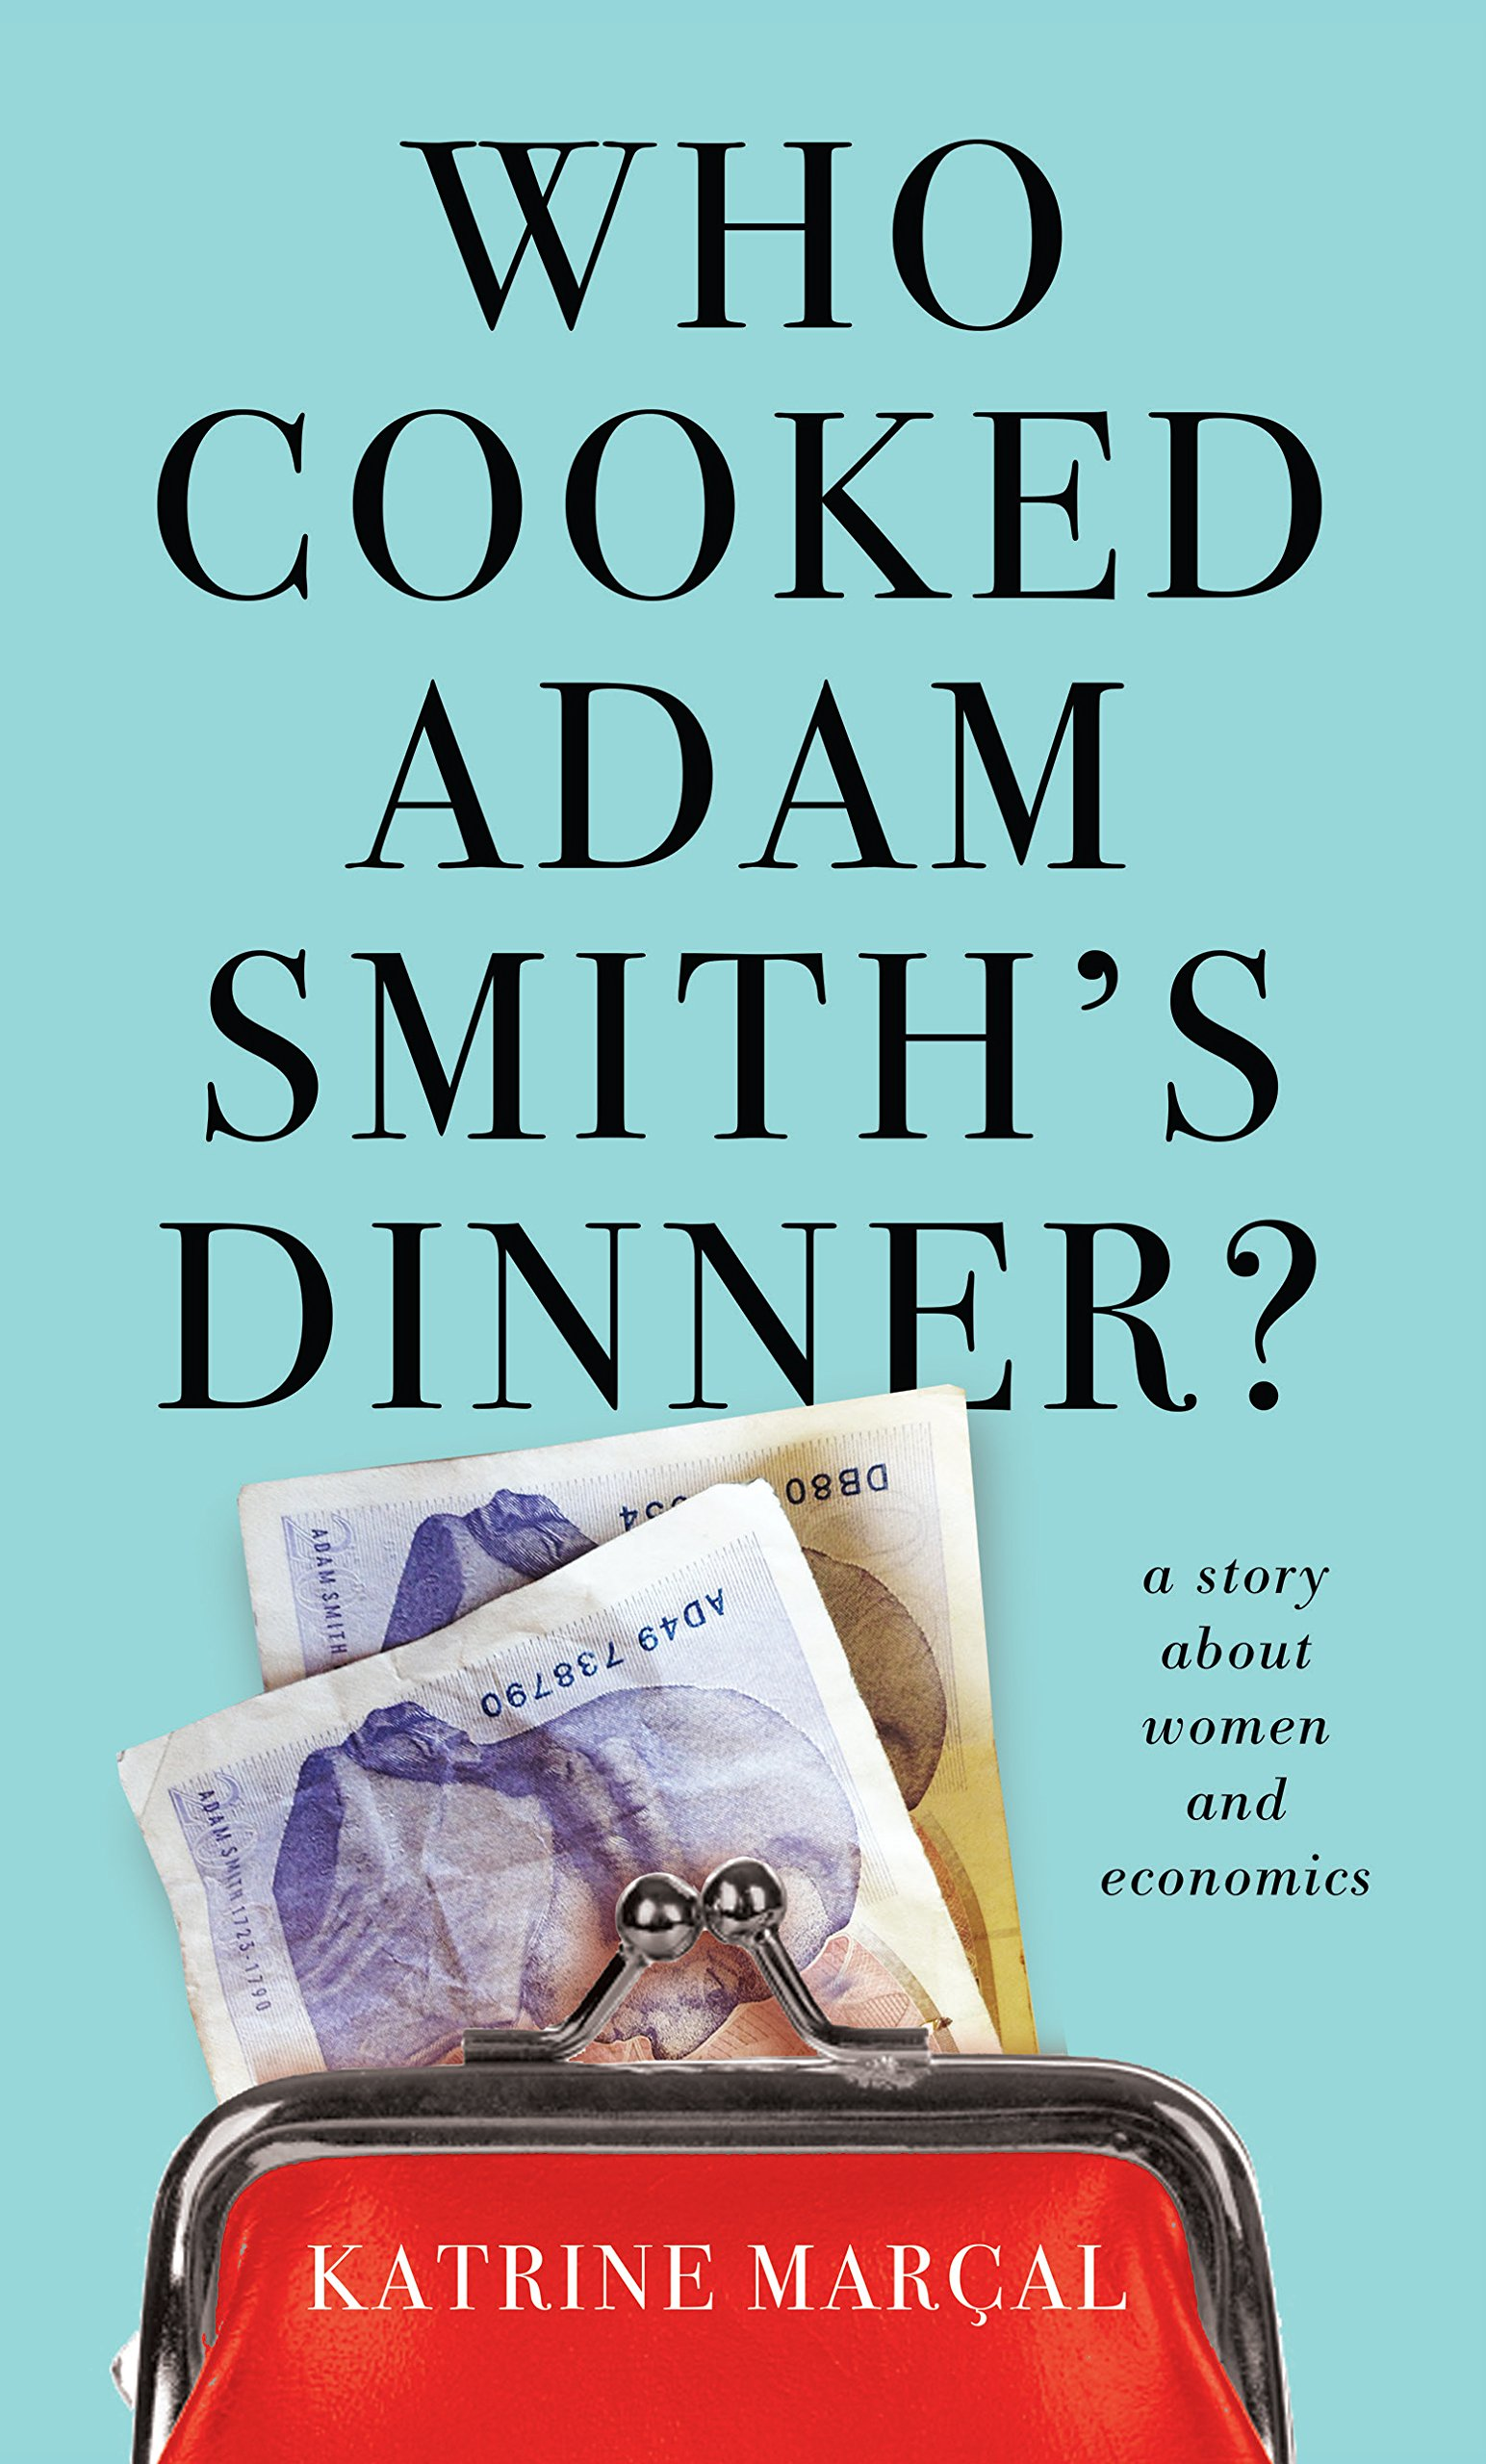 who cooked adam smith s dinner a story about women and economics who cooked adam smith s dinner a story about women and economics amazon co uk katrine marcal 9781846275647 books